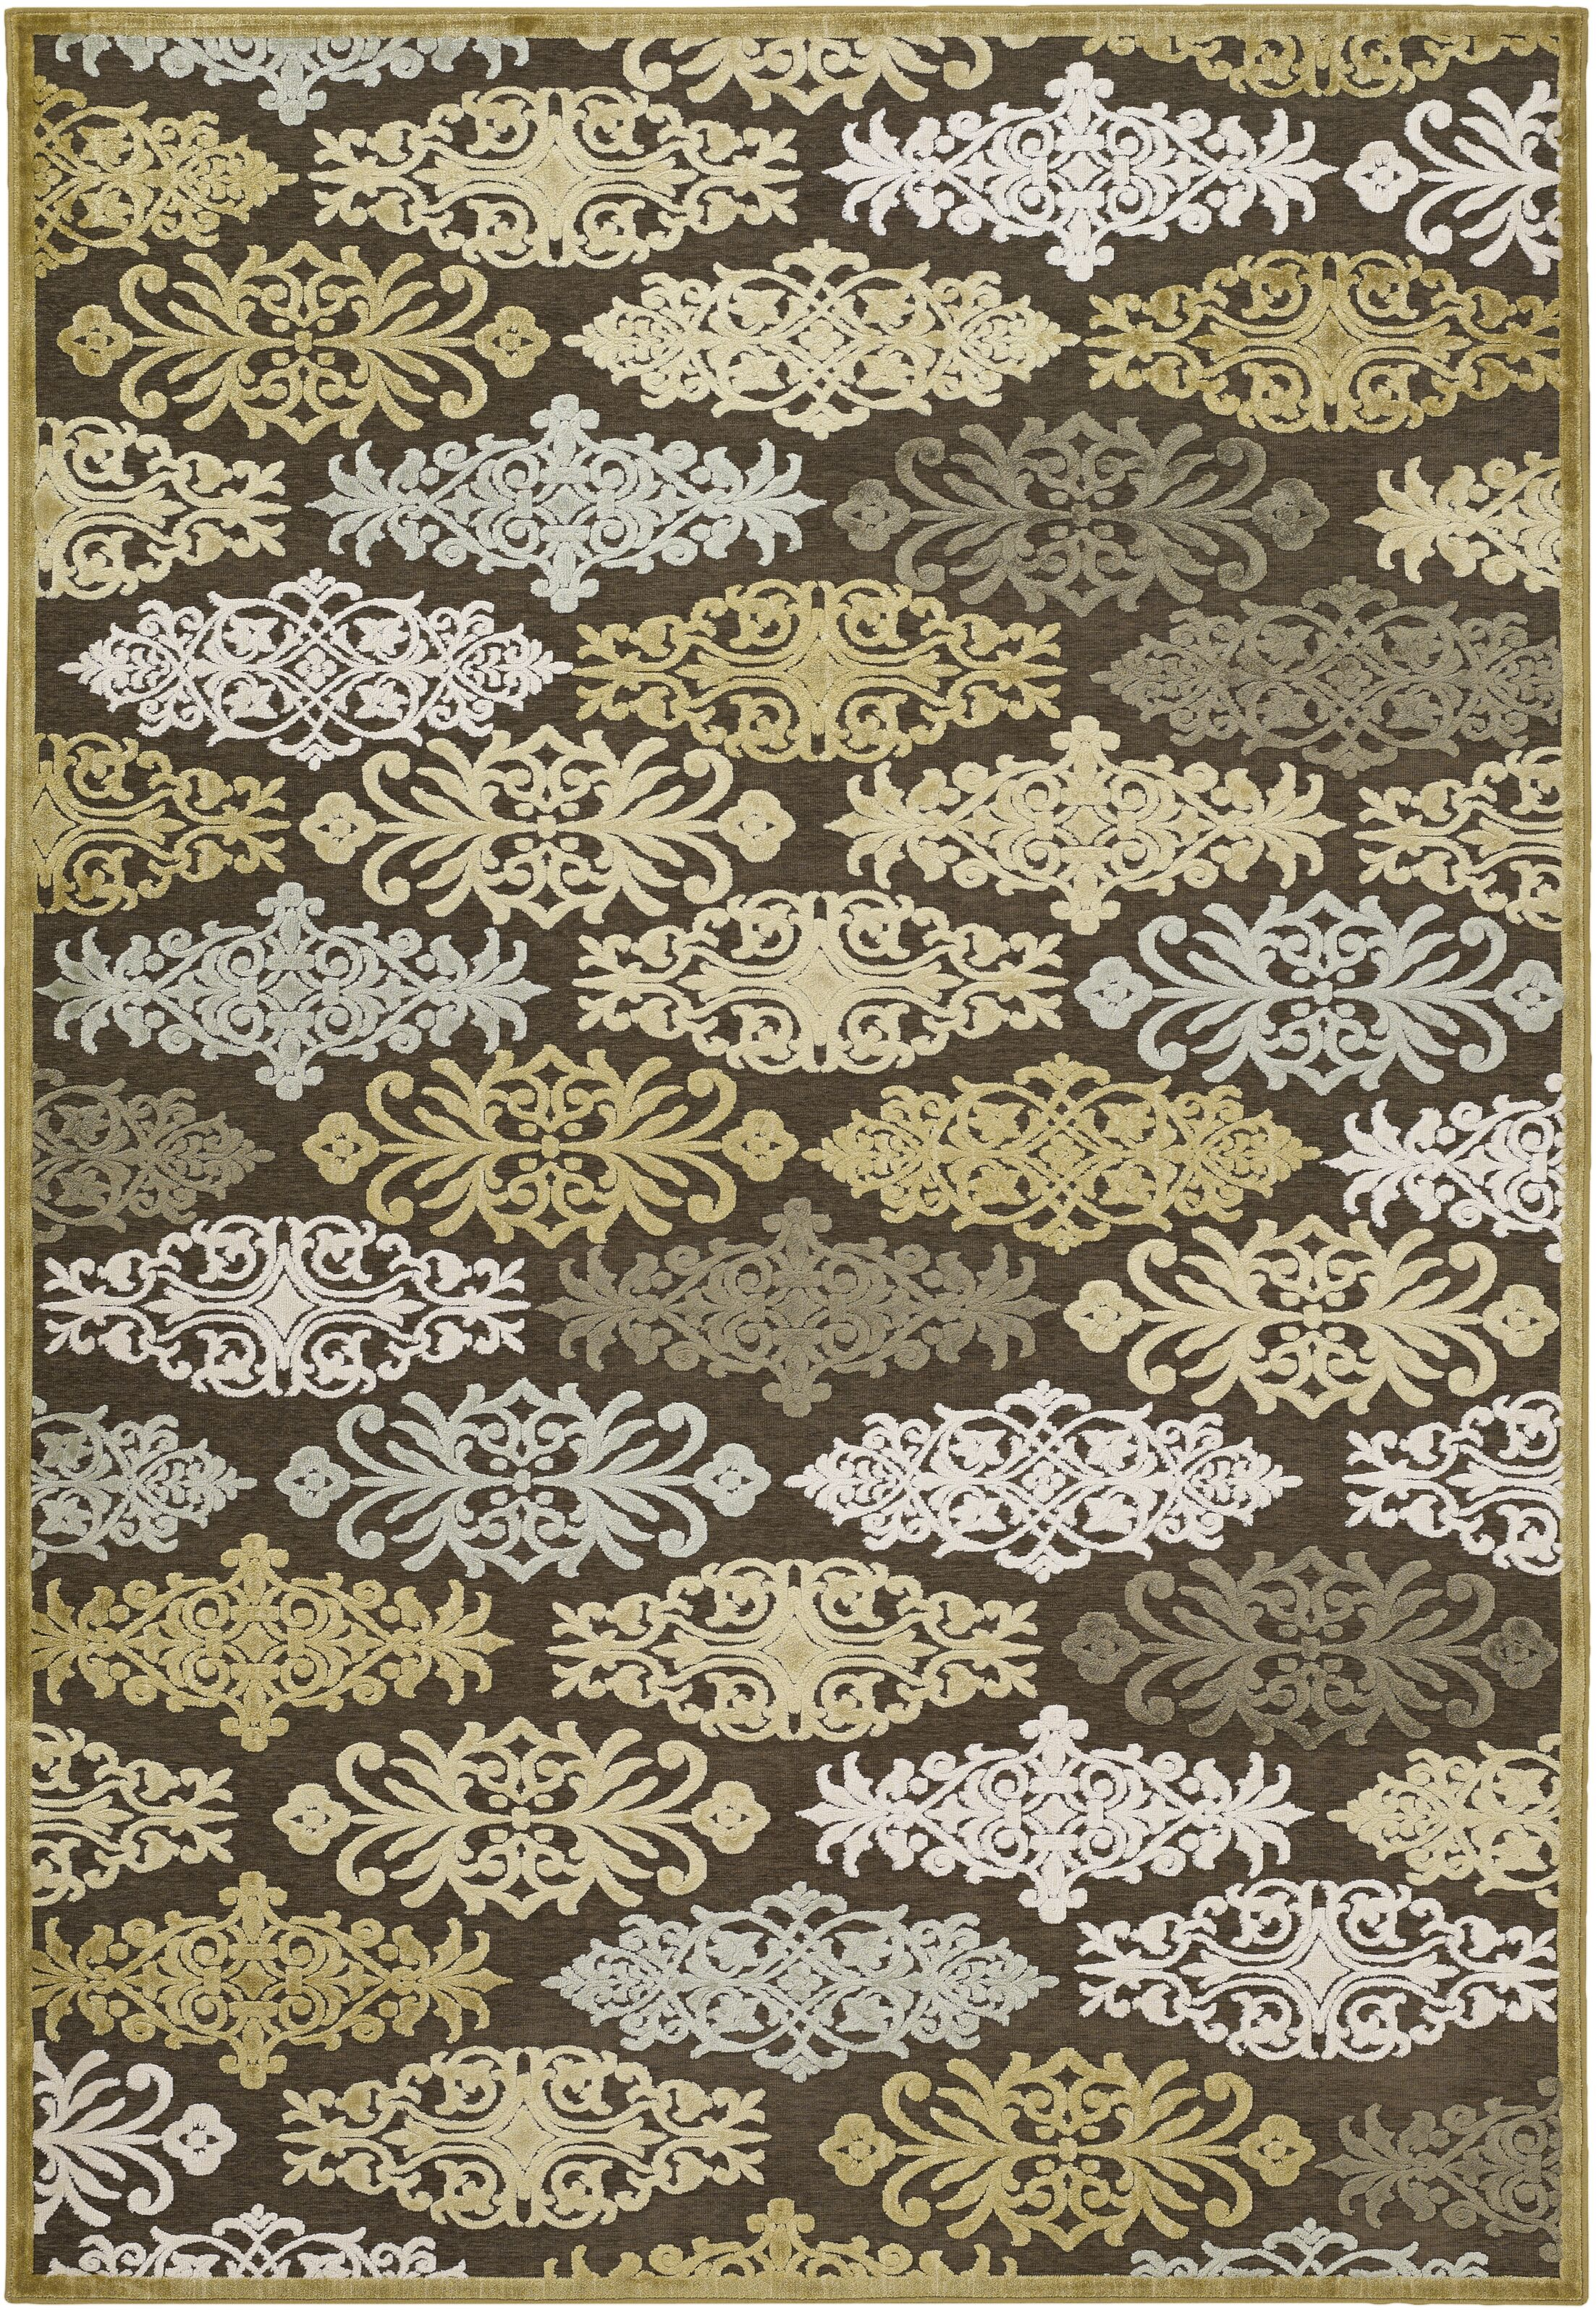 Caseyville Traditional Hand-Woven Brown/Pale Blue Area Rug Rug Size: Rectangle 4' x 5'7